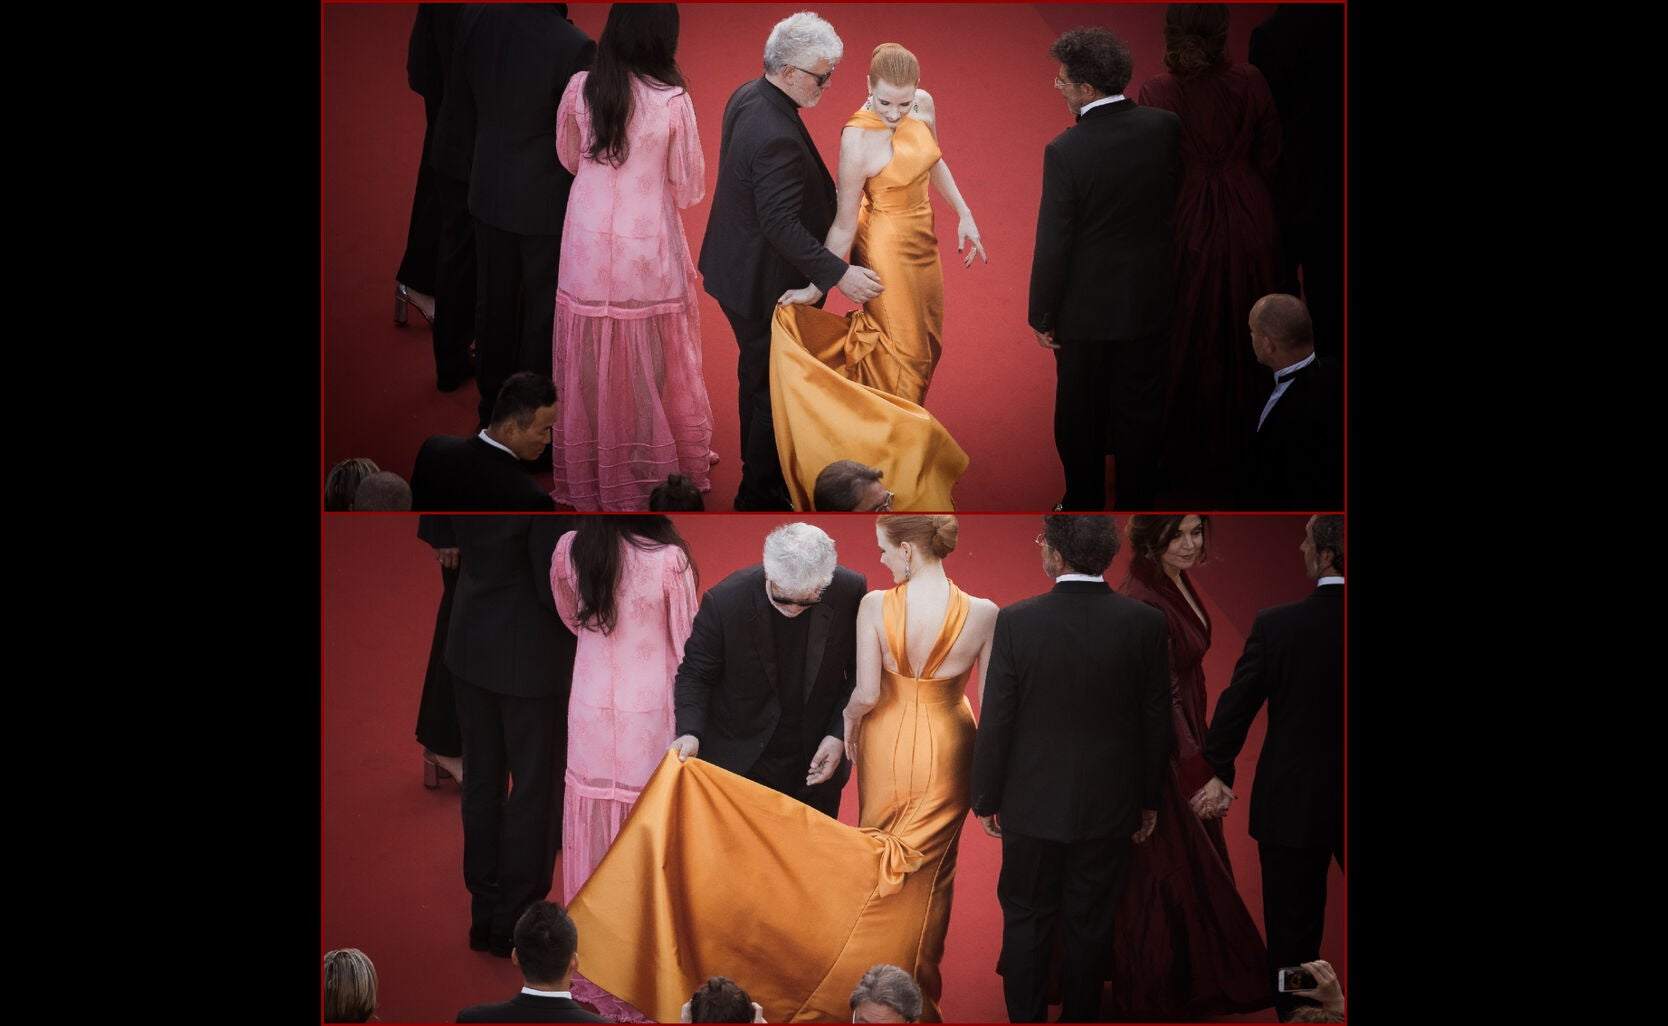 Jessica Chastain and Pedro Almodovar in Cannes 2017